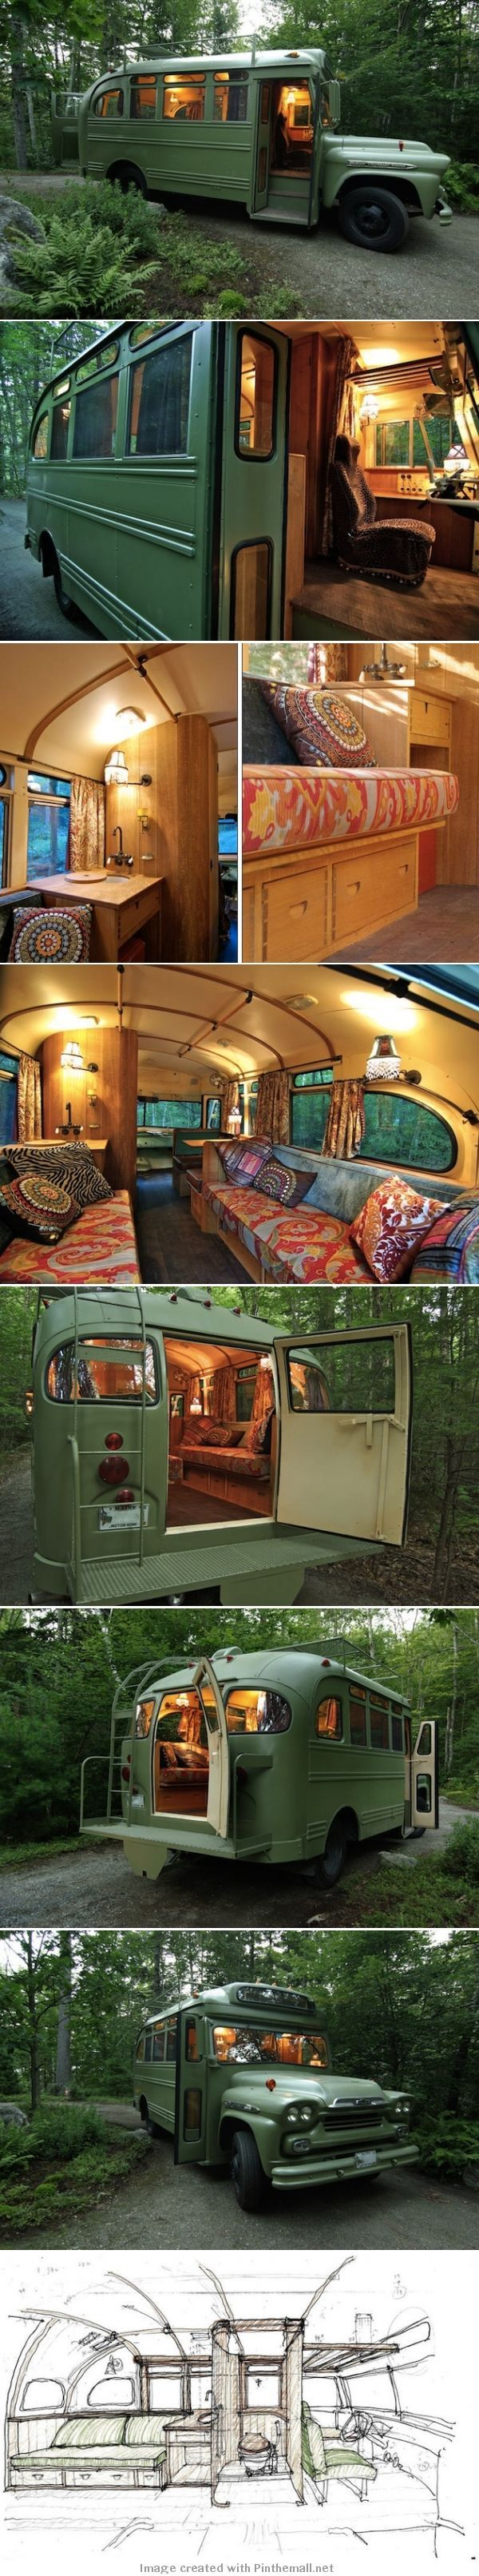 1960s Chevy bus to camper conversion - created via